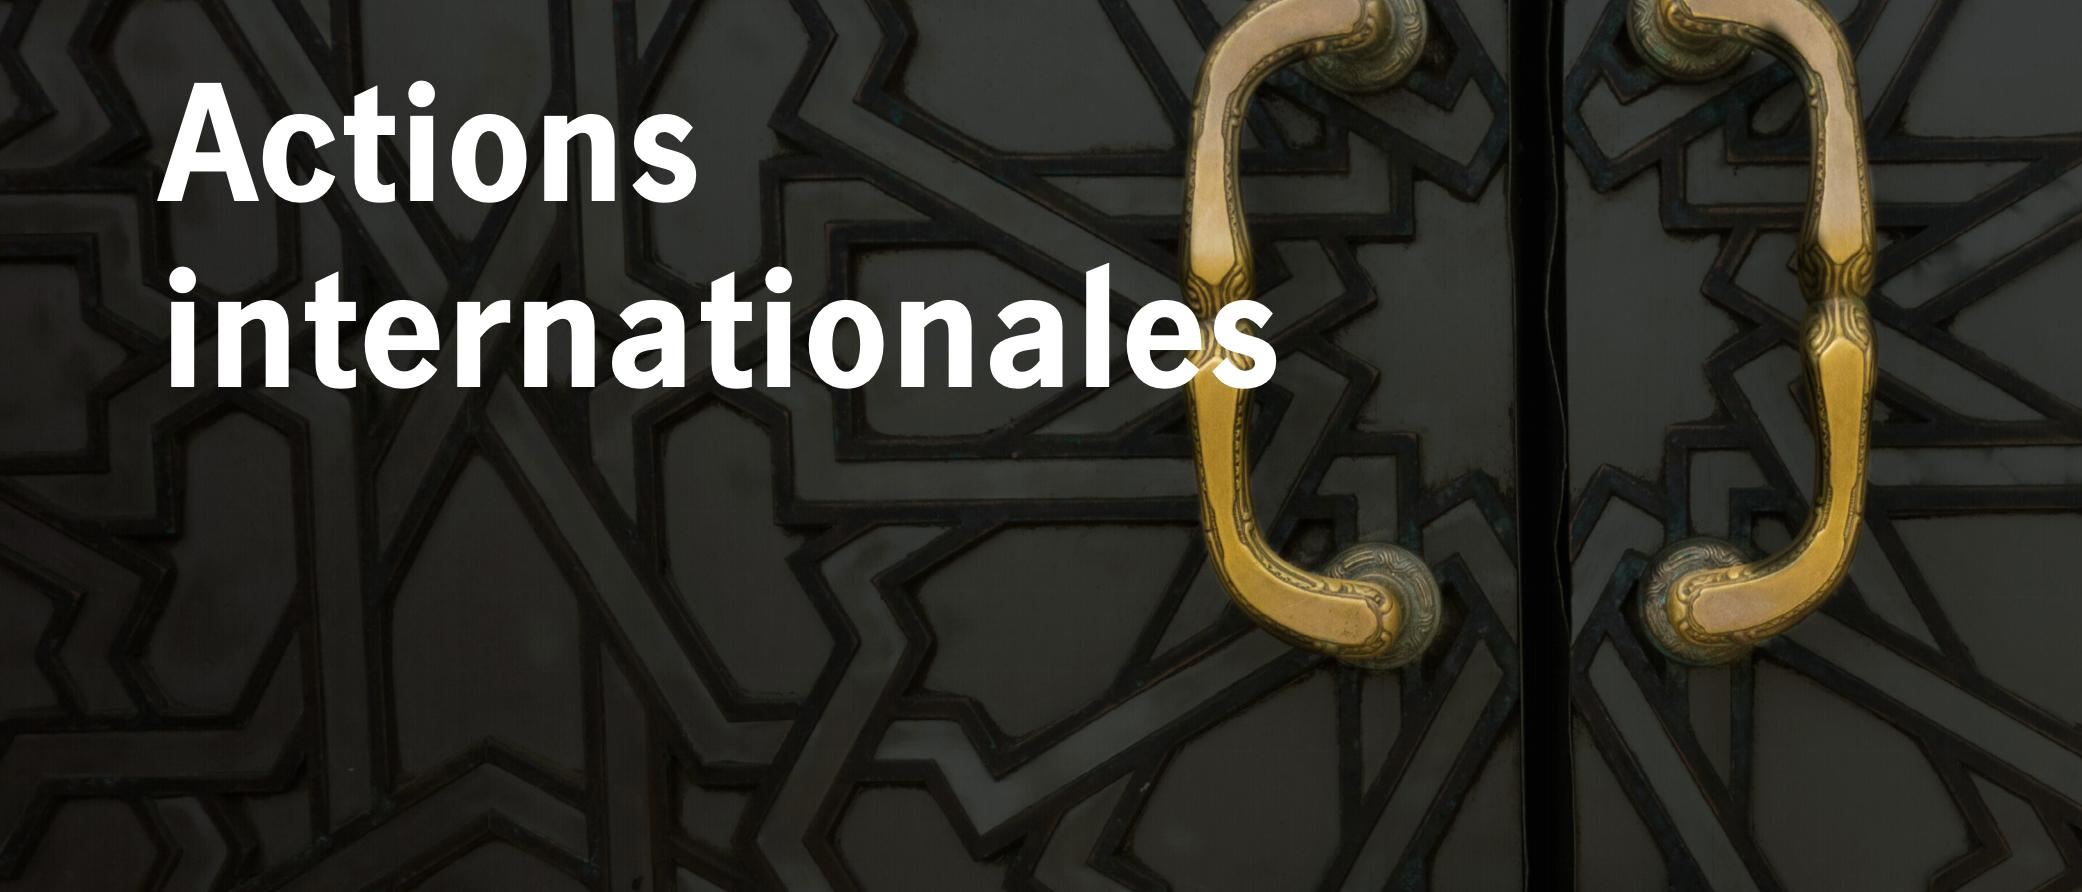 Actions internationales Thumbnail